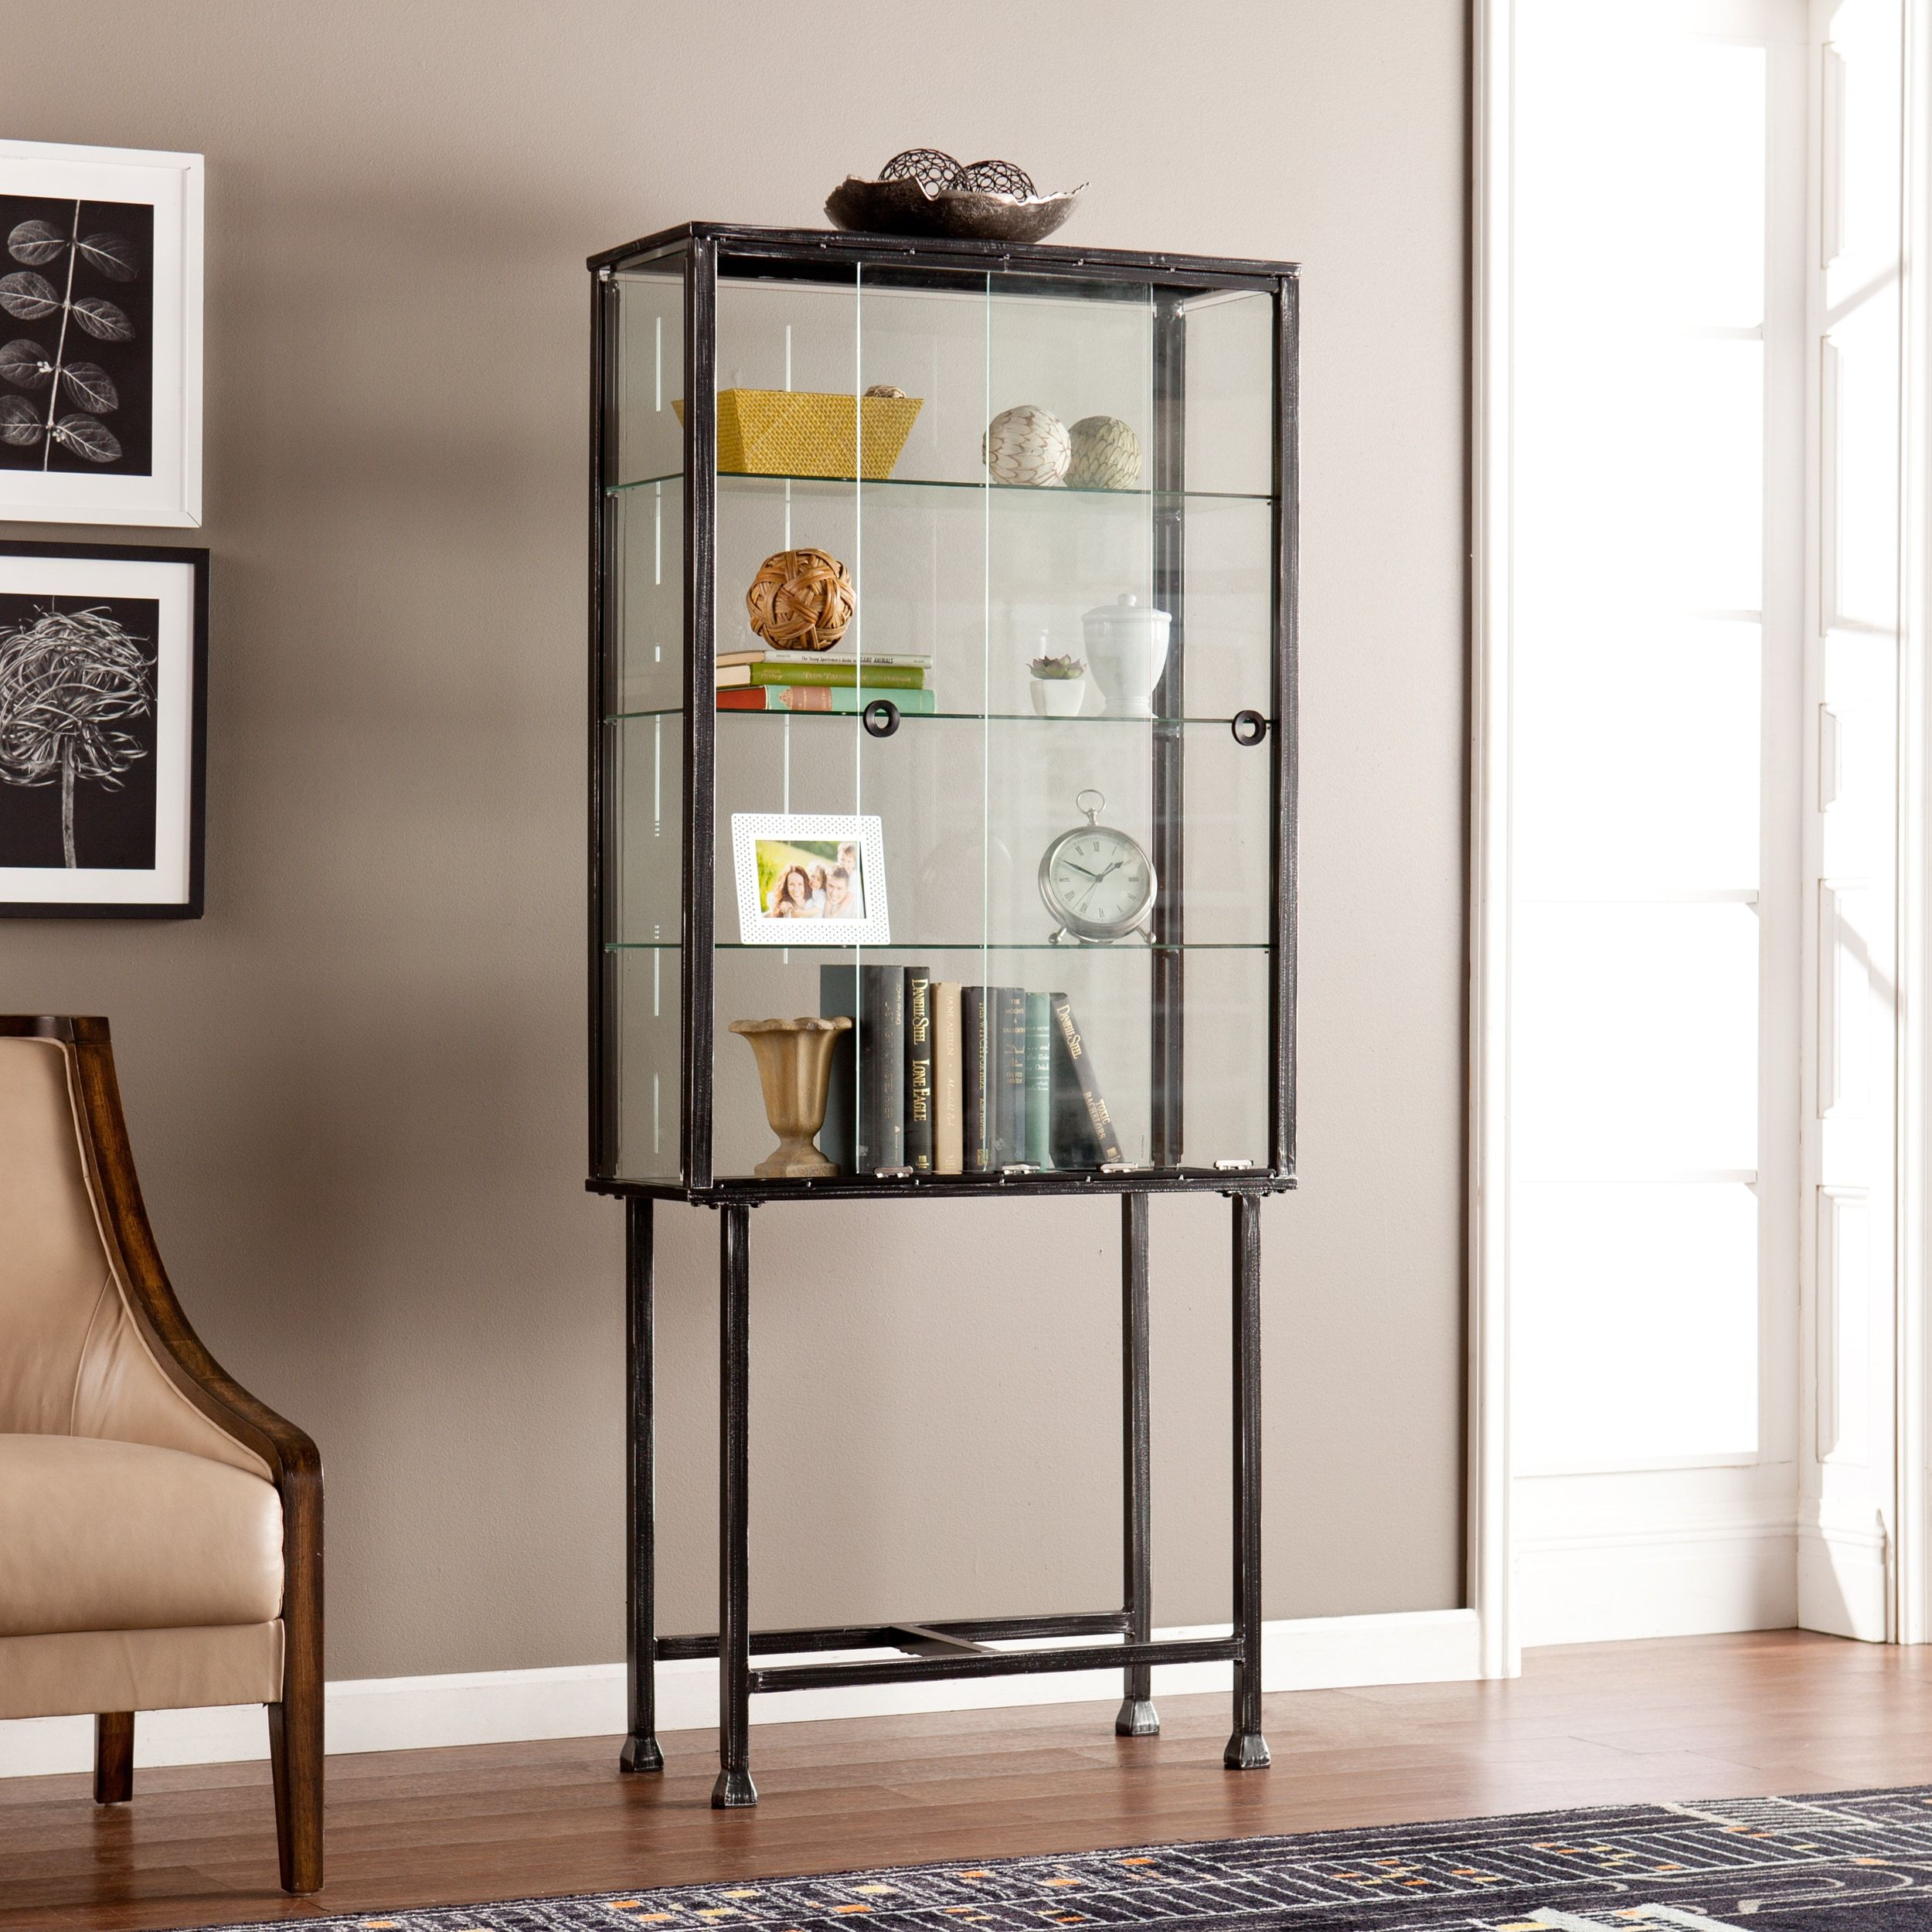 today home of product tiered bookcase garden tier display america cabinets cabinet overstock livings oliver living jacek furniture james room free shipping